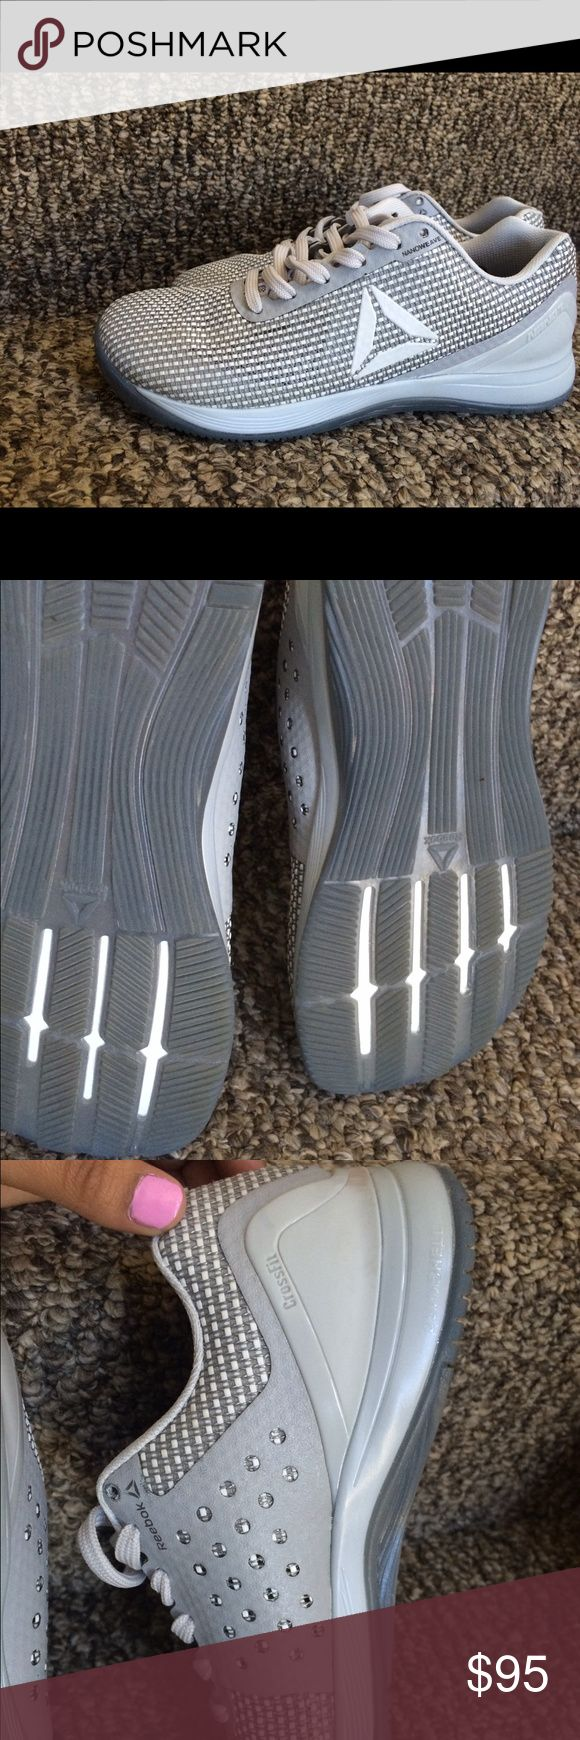 womens reebok crossfit nano 7's used only once! size 7.5 gray and white crossfit nano 7's Reebok Shoes Athletic Shoes